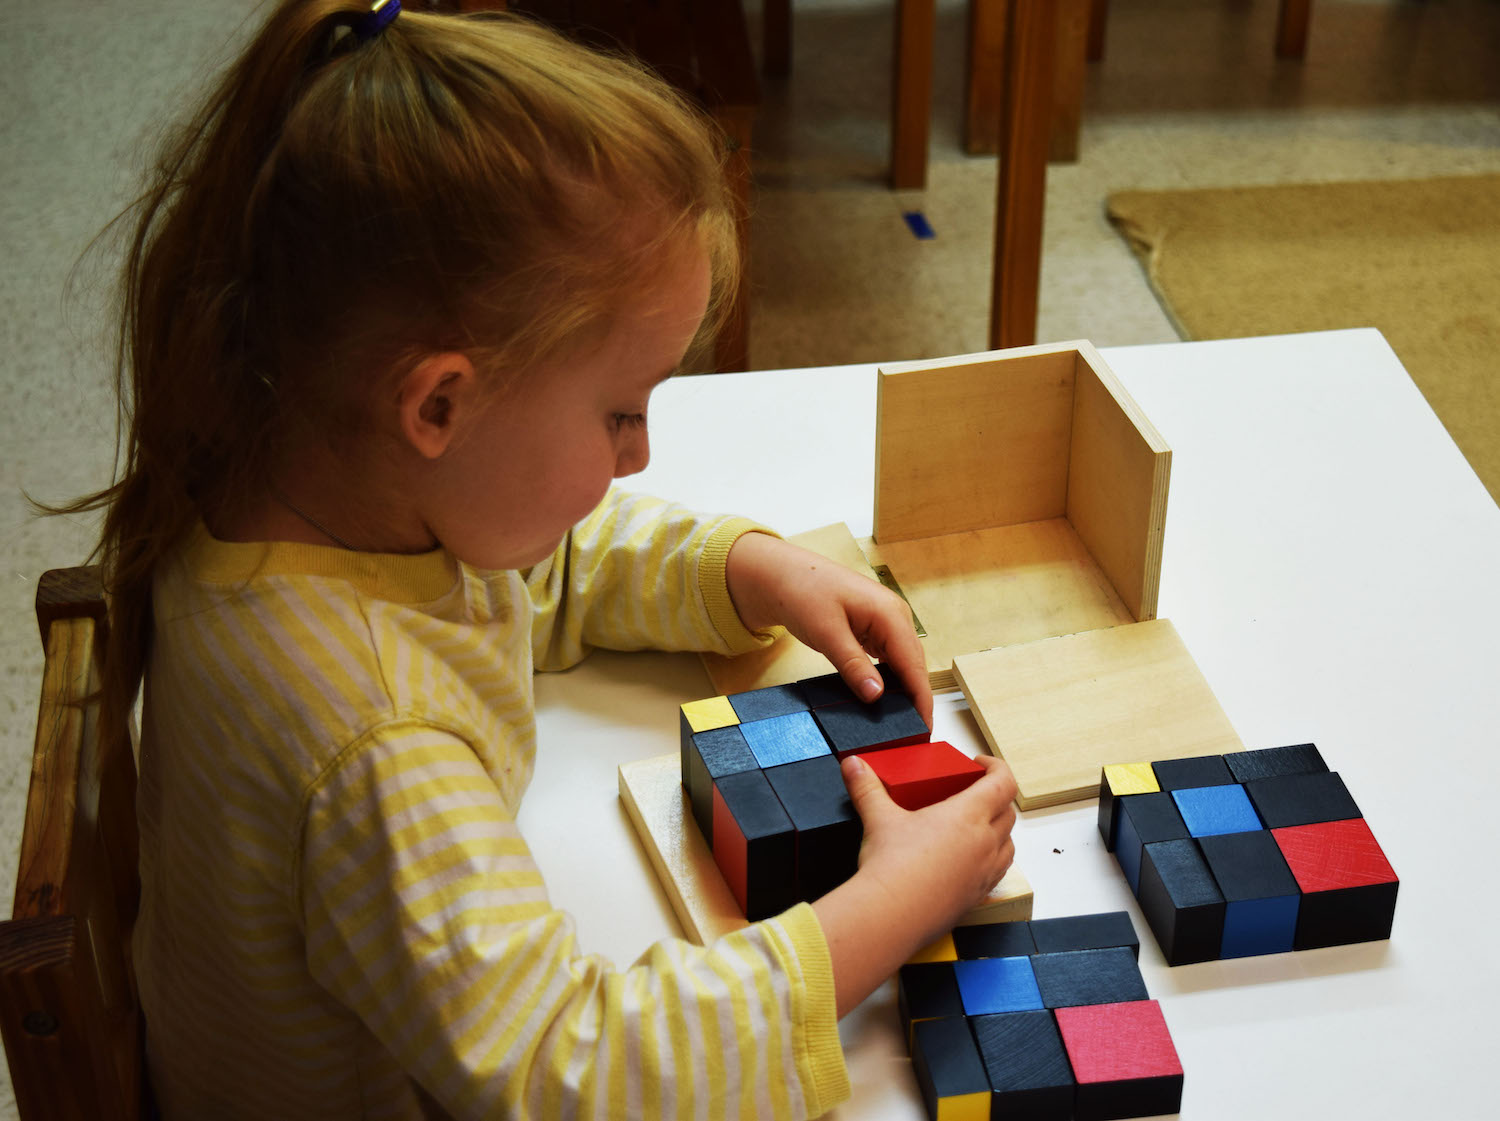 Child Performing Montessori Work.JPG